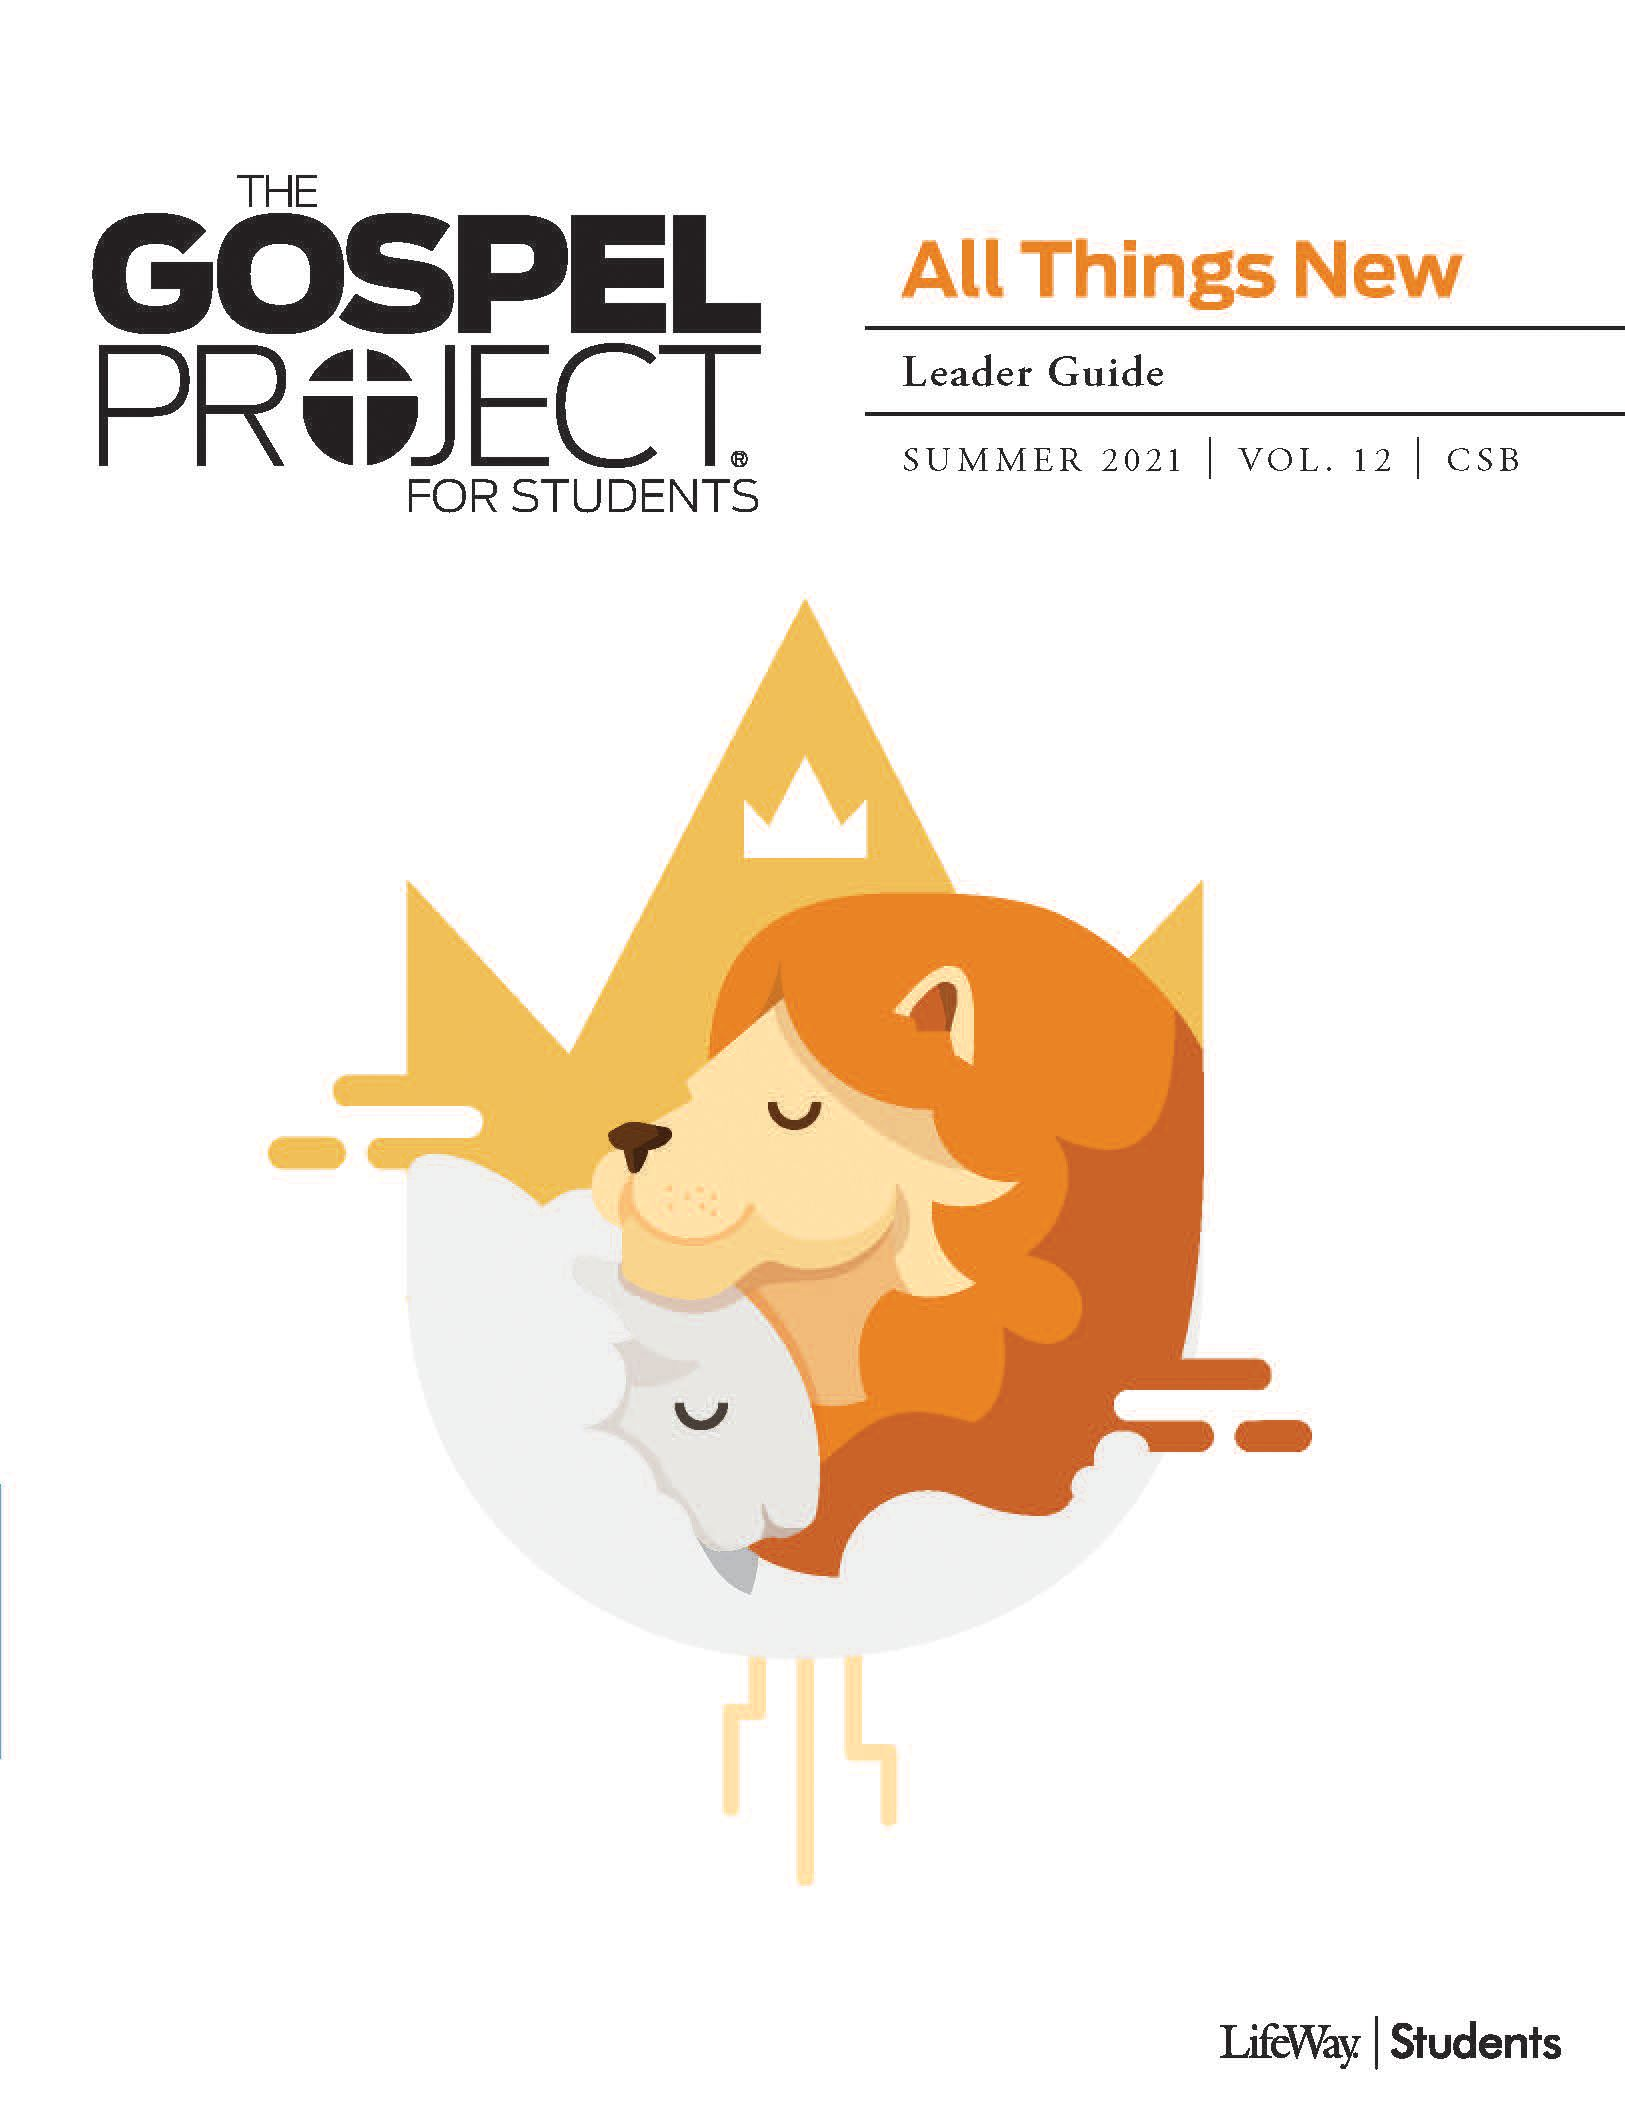 The Gospel Project for Students Leader Guide